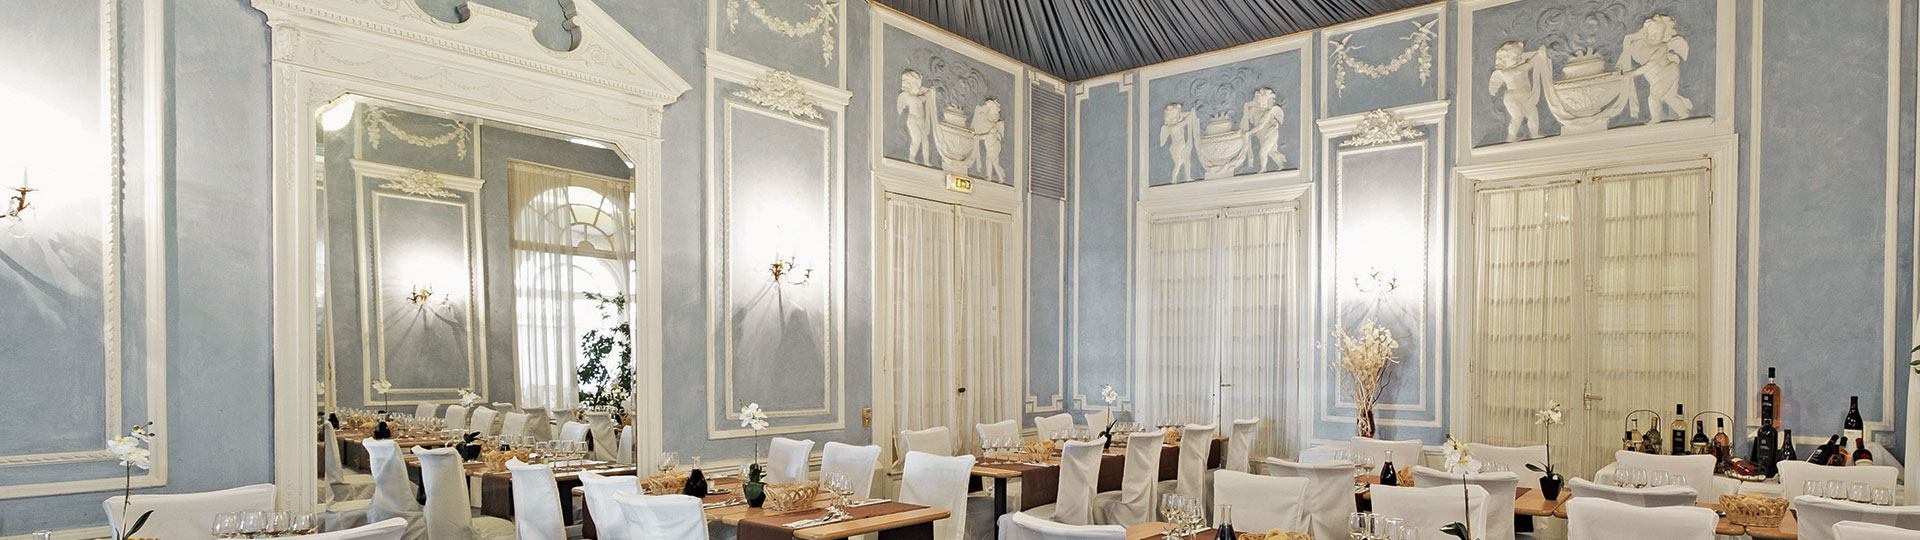 Le Royal Restaurant